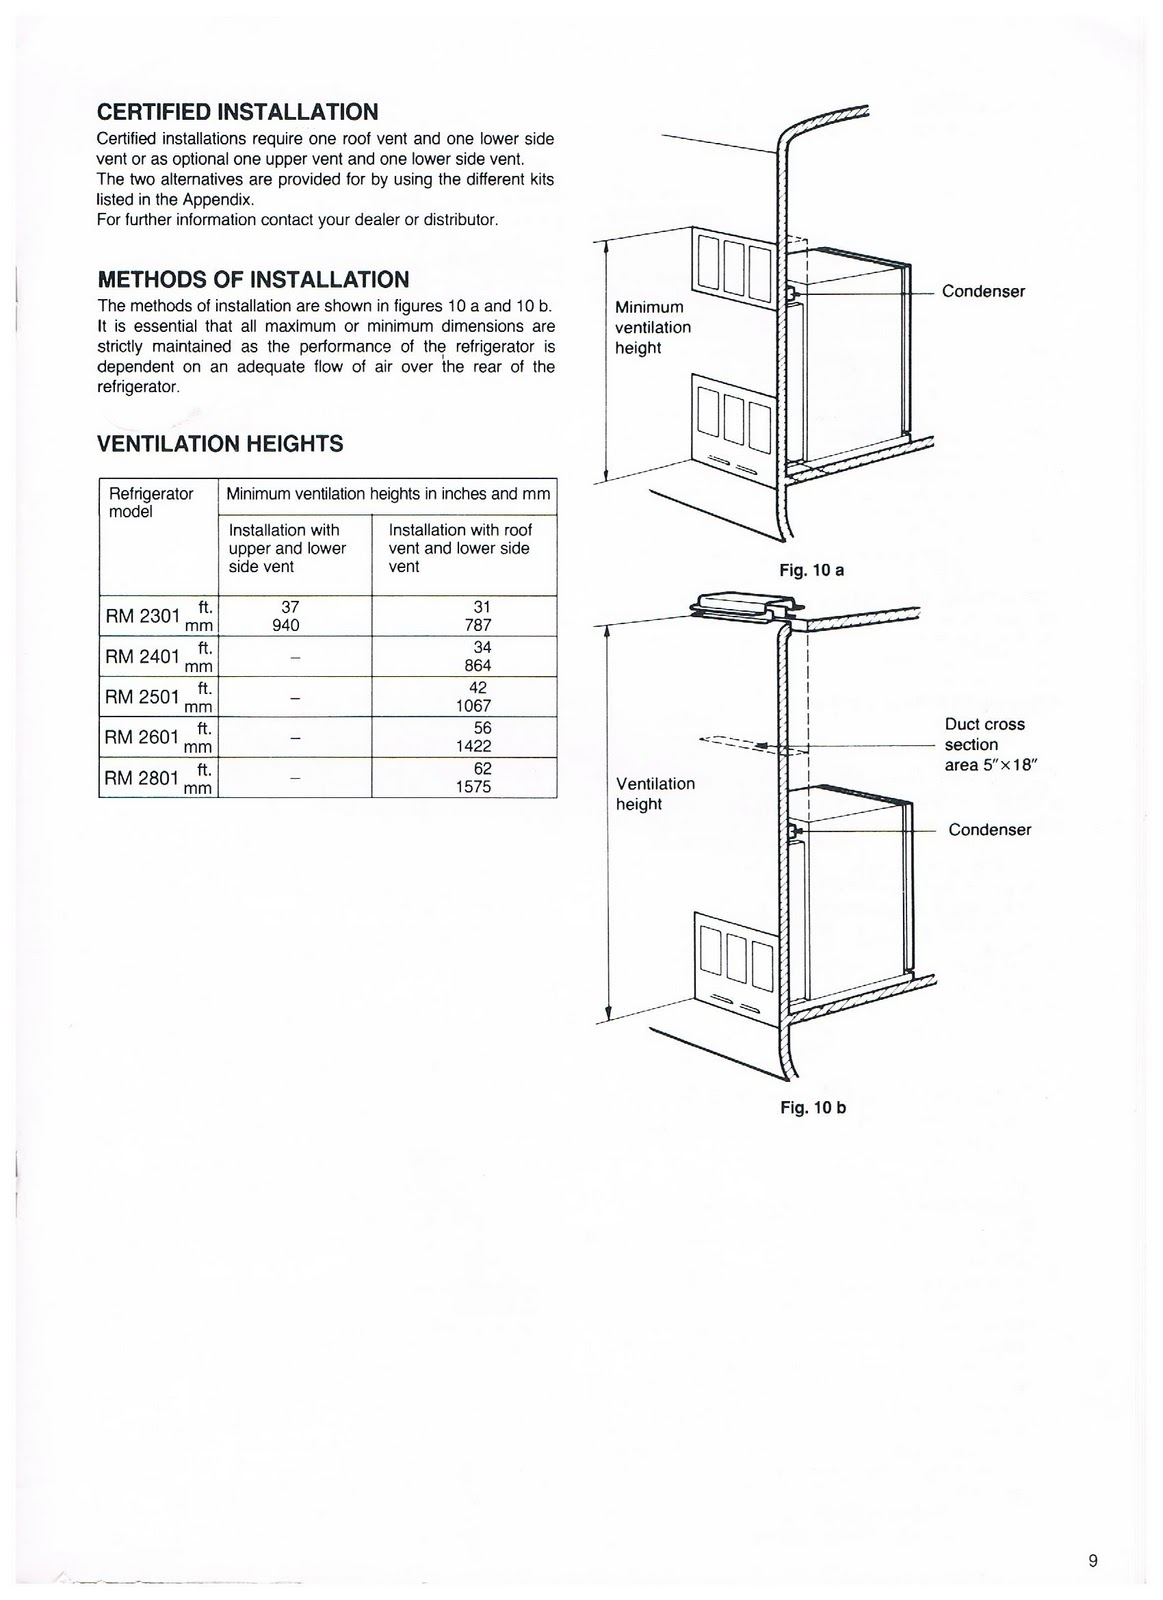 dometic refrigerator dometic rv refrigerator owners manual on [ 1163 x 1600 Pixel ]